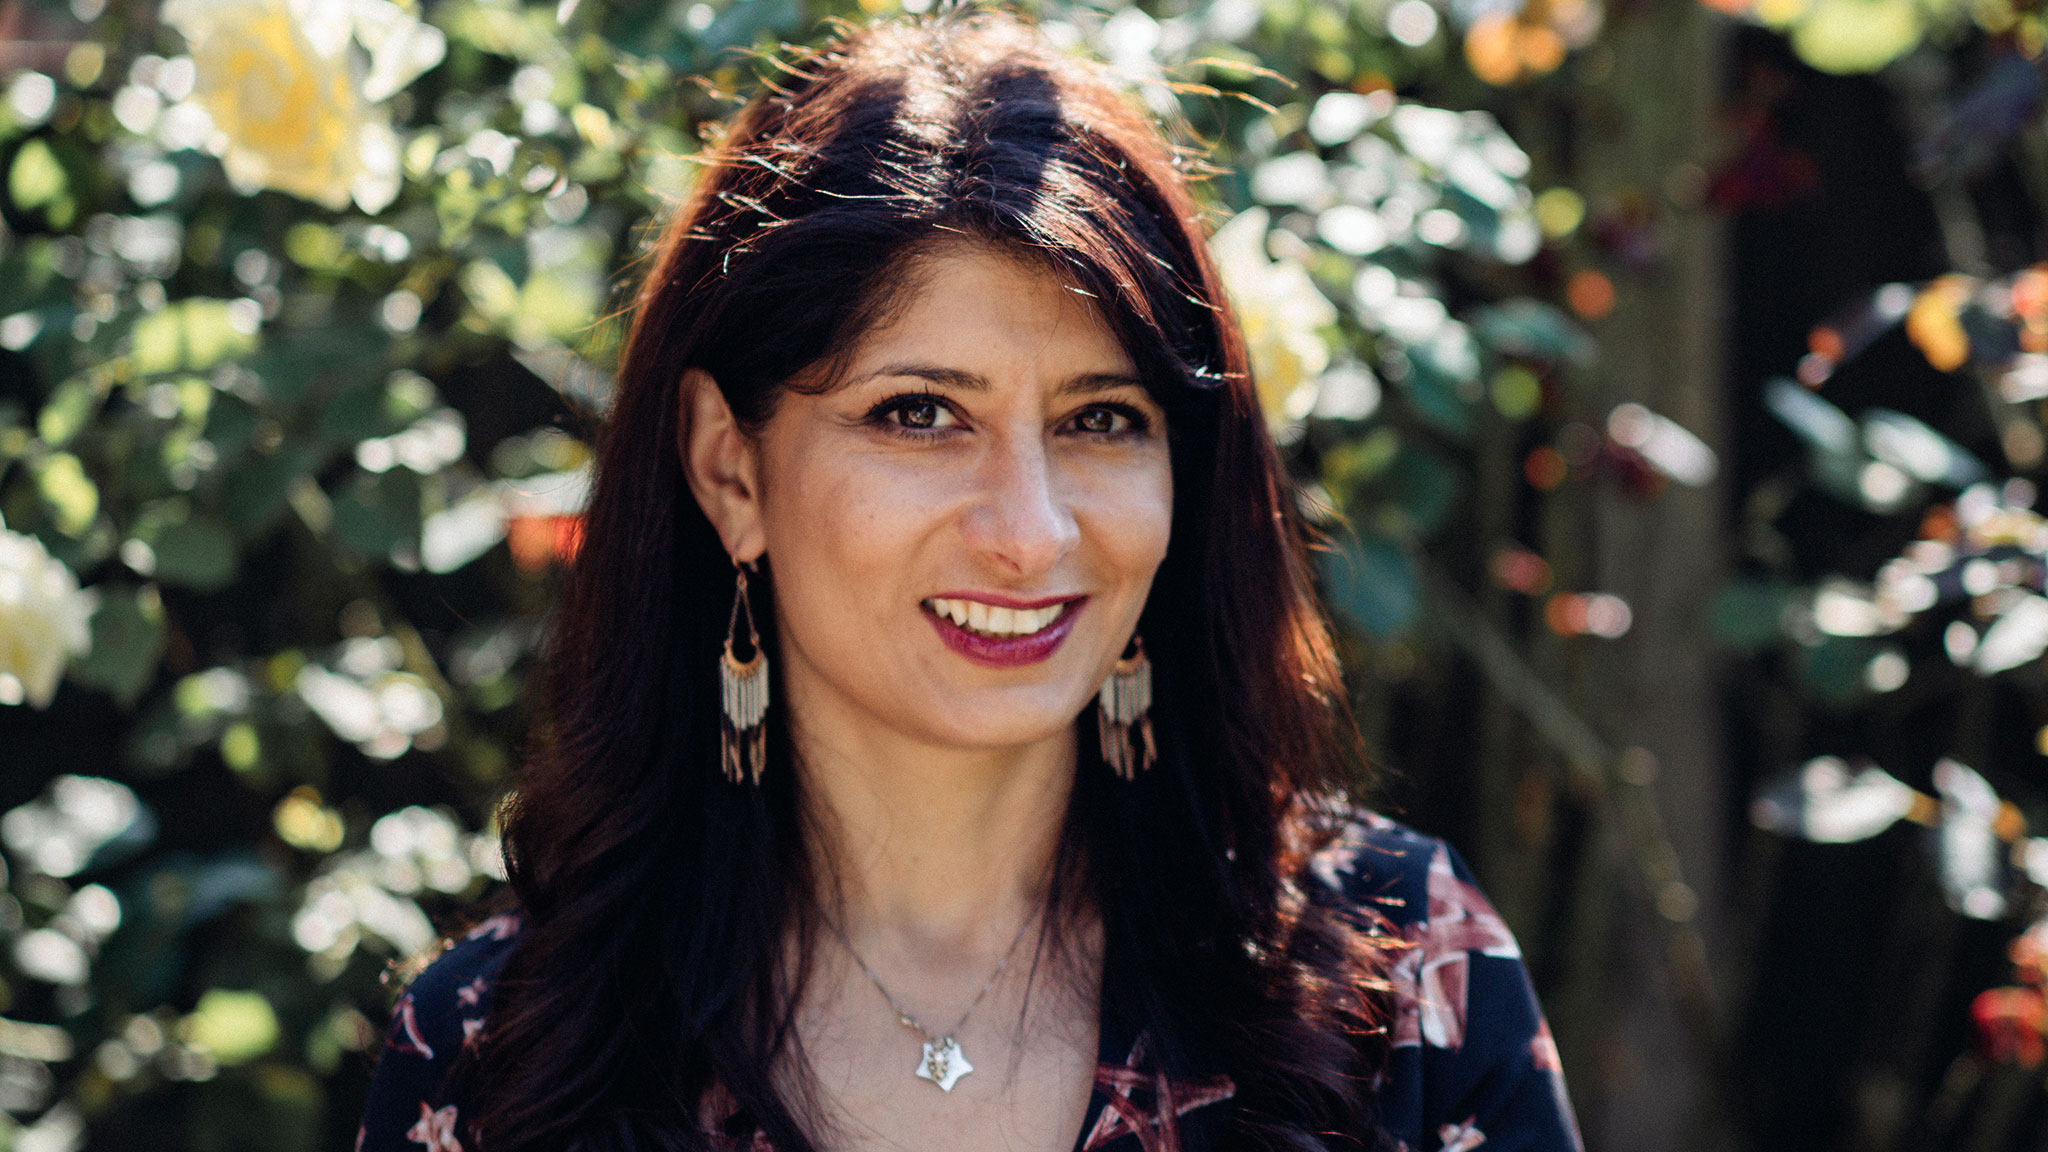 Shappi khorsandi dating after divorce